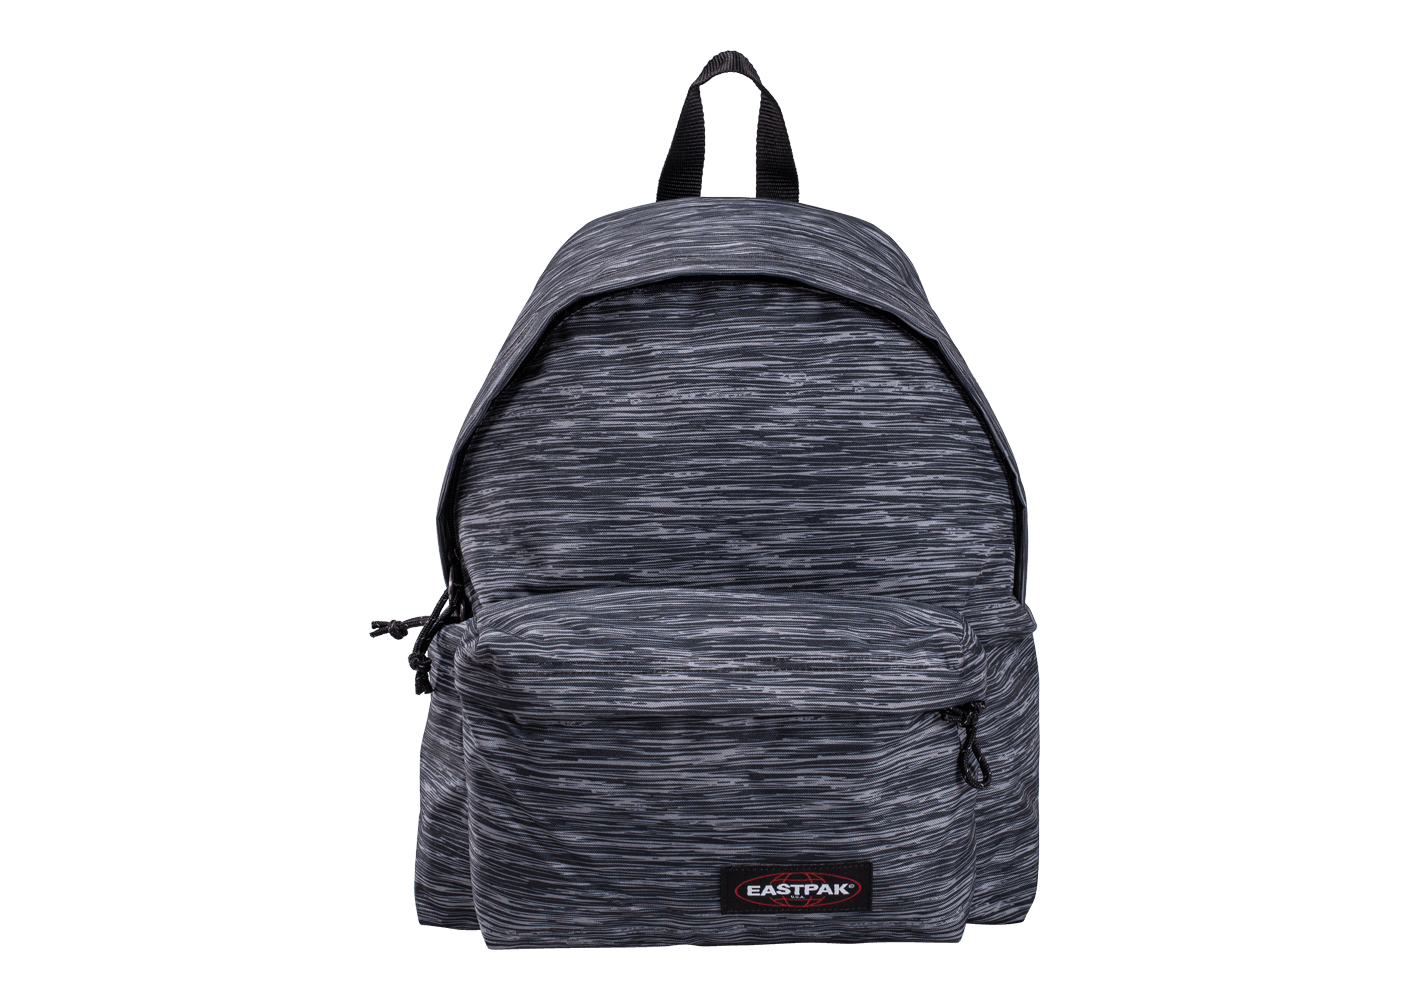 eastpak sac dos padded pak 39 r knit grey black friday chausport. Black Bedroom Furniture Sets. Home Design Ideas